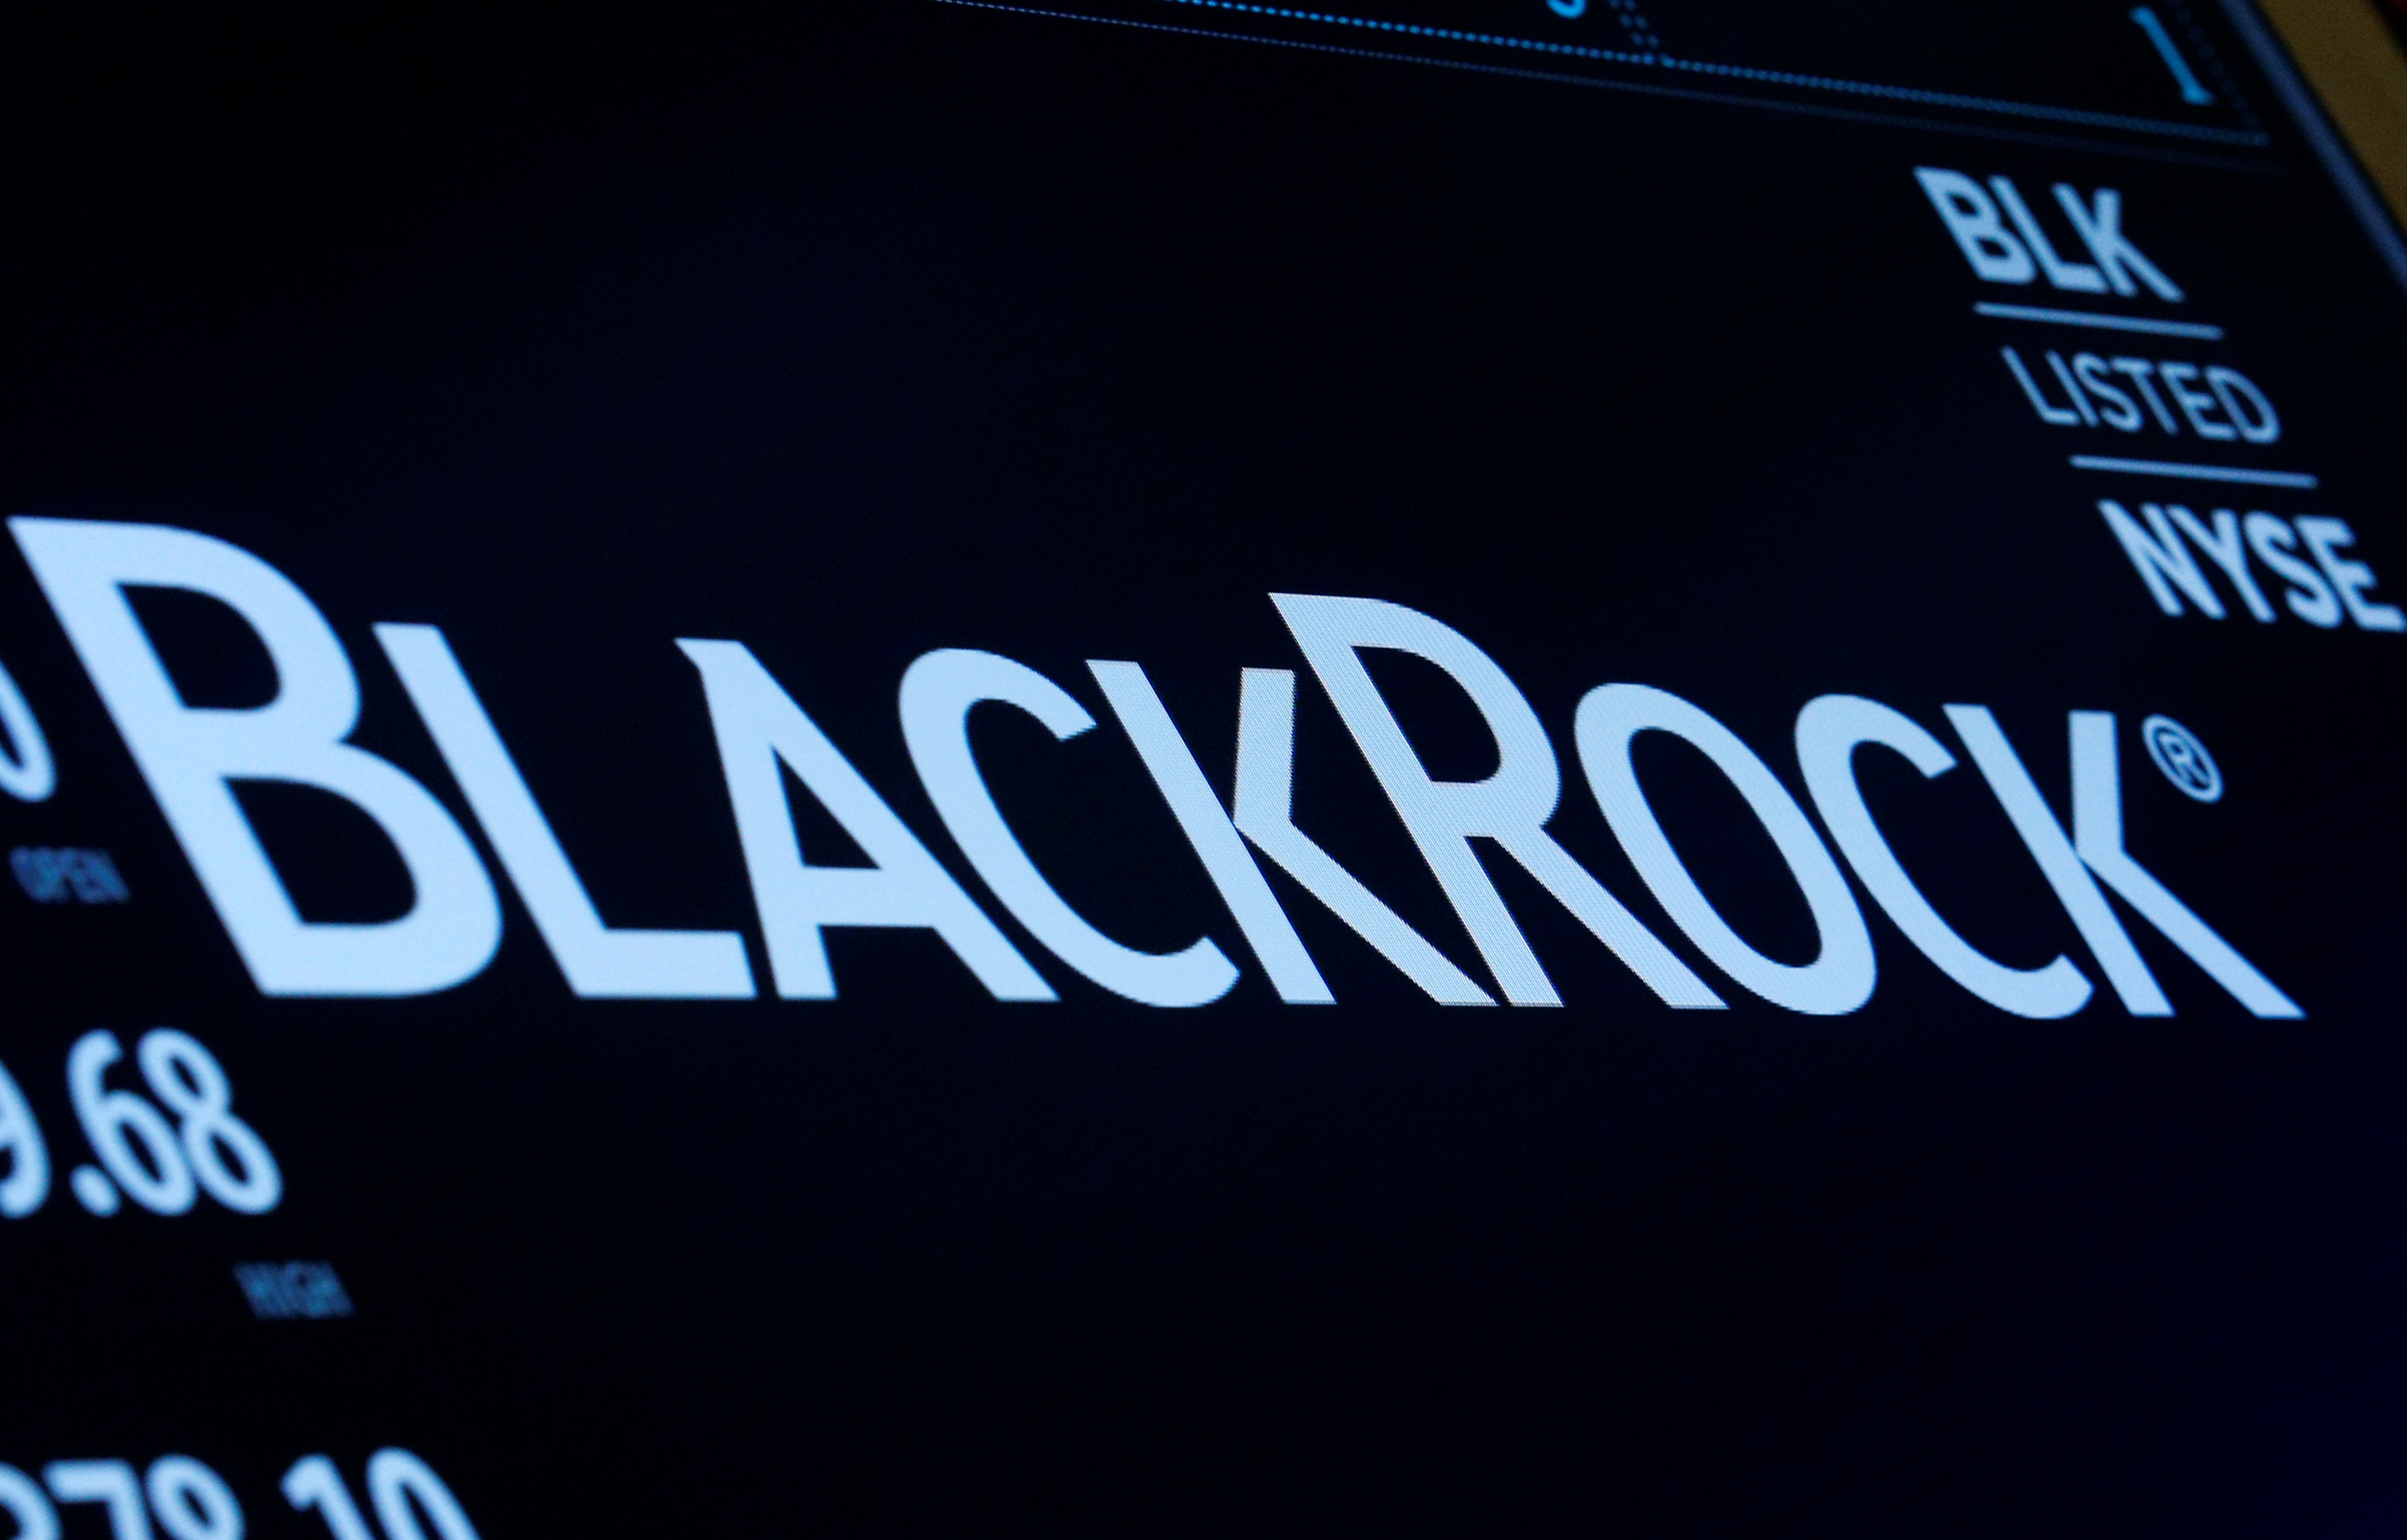 BlackRock raises $2 billion for Global Credit Opportunities Fund